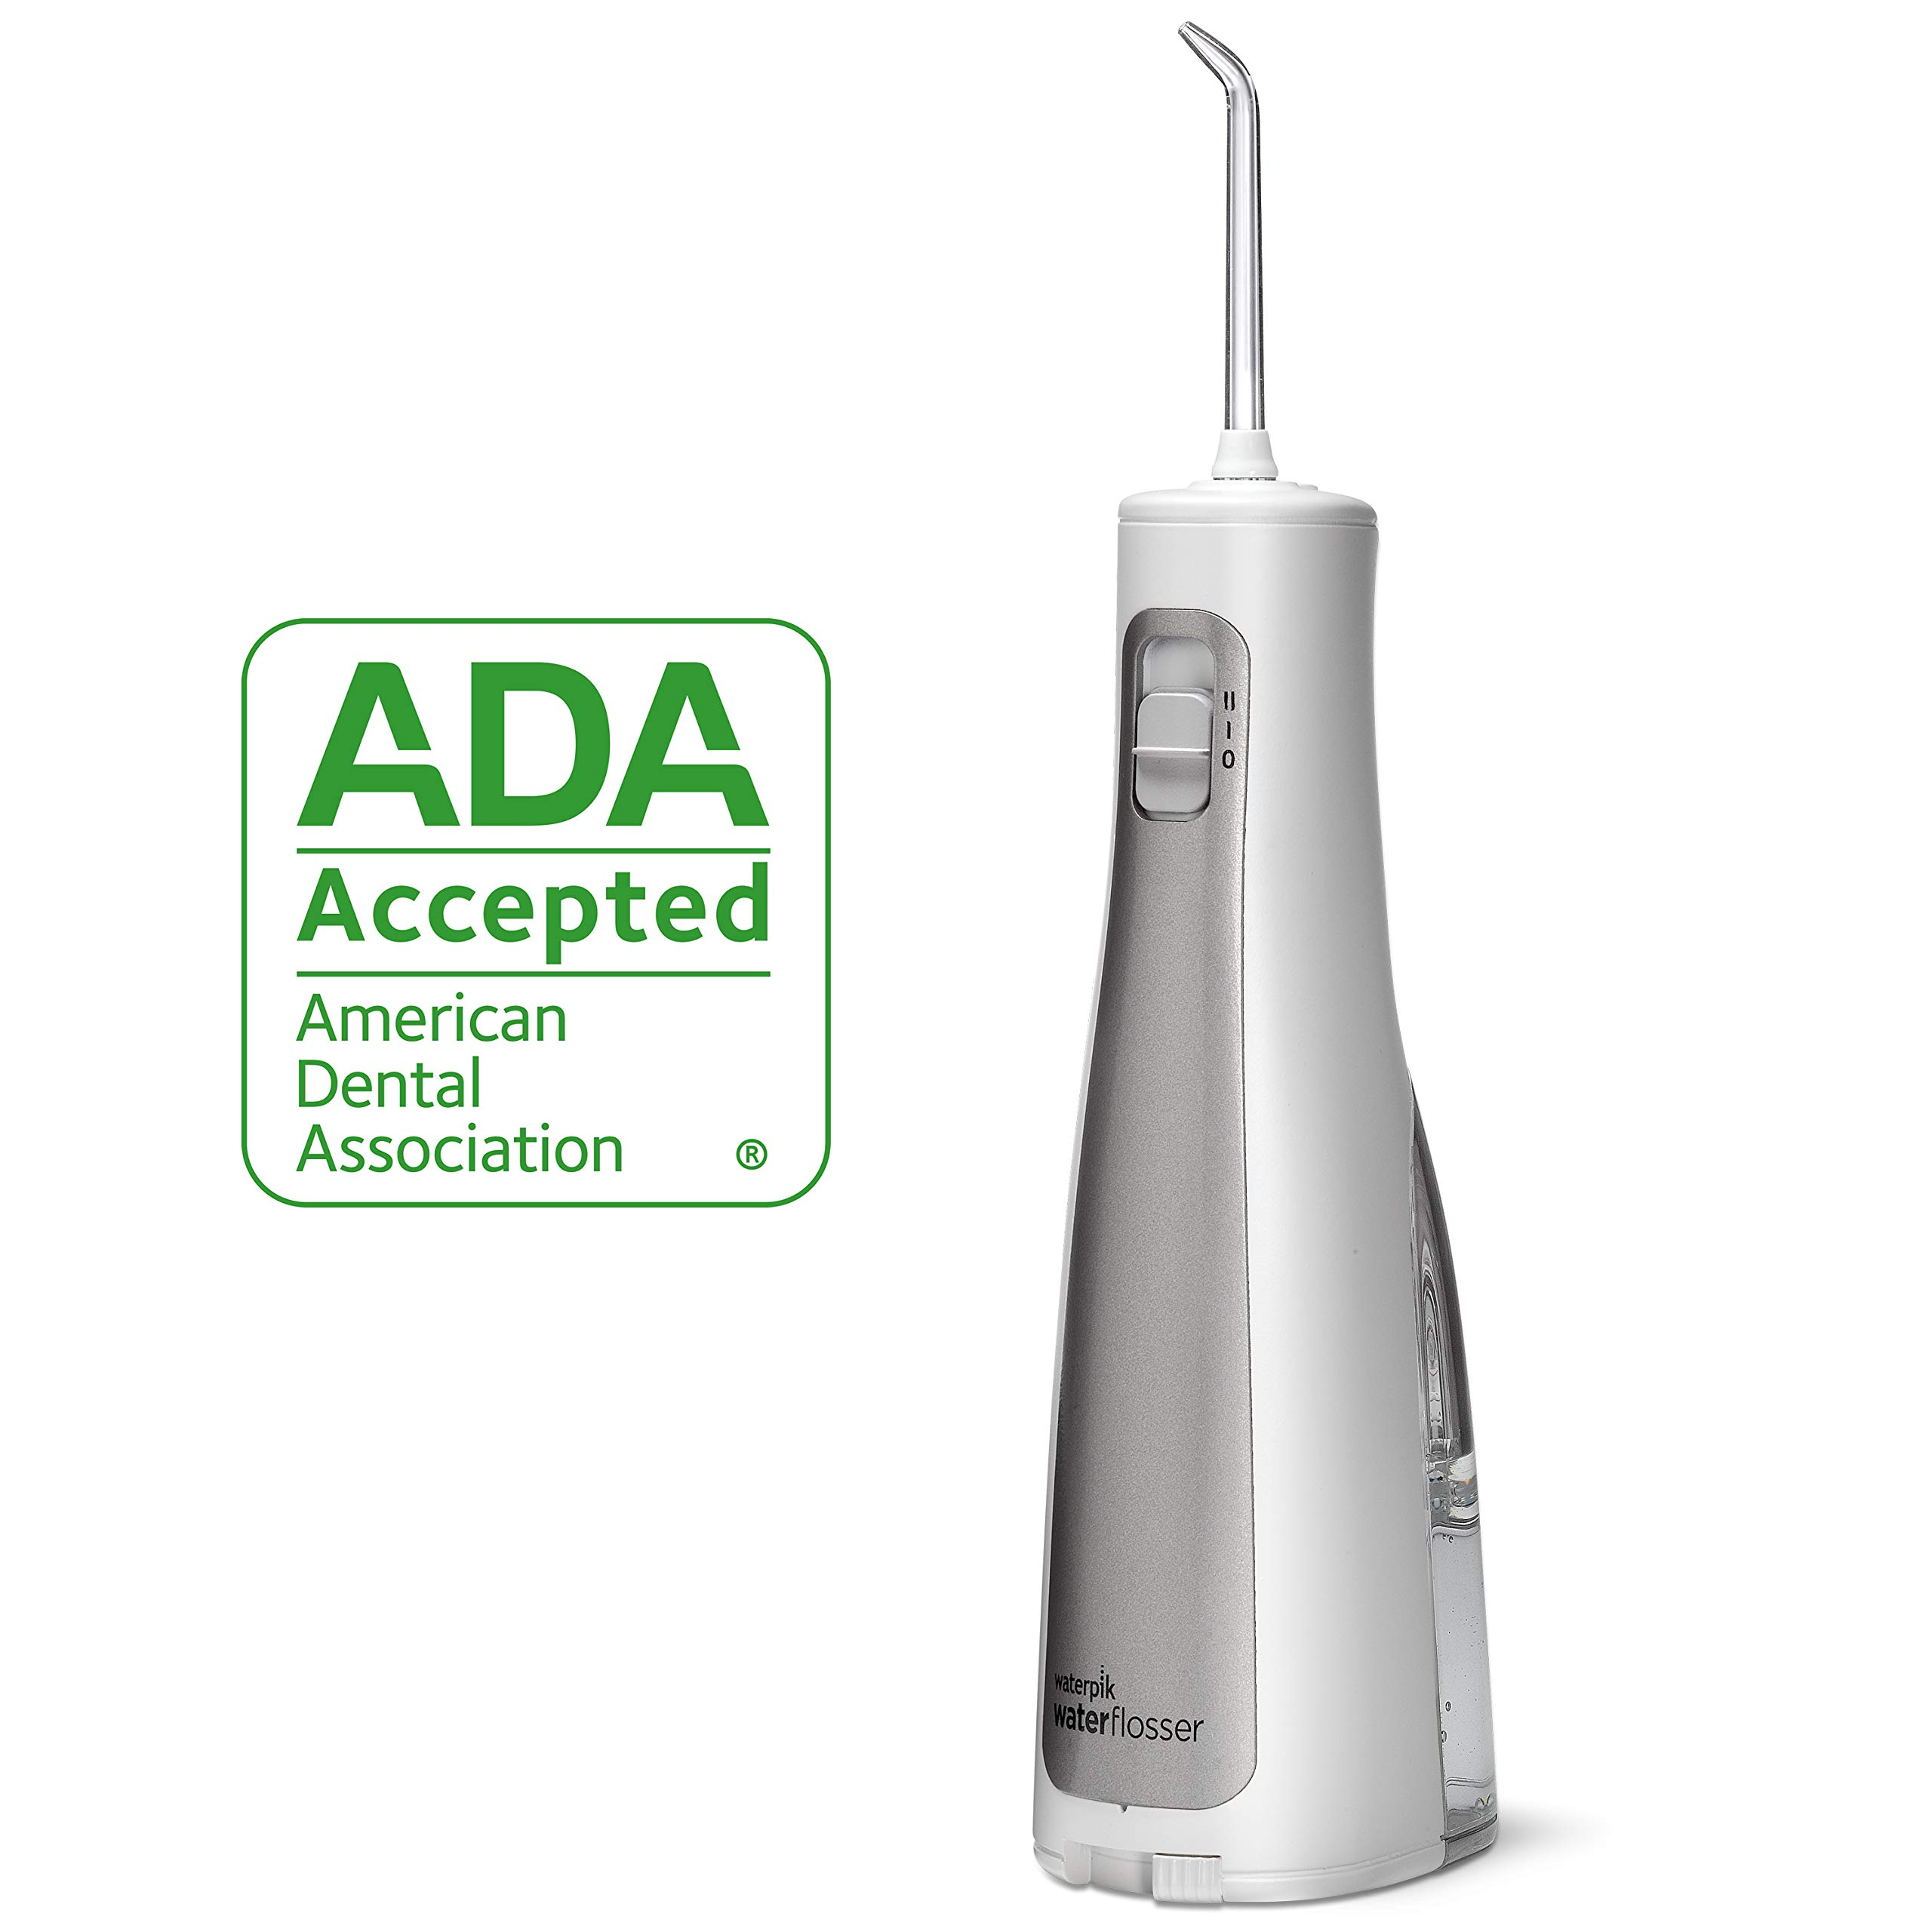 Waterpik Cordless Freedom ADA Accepted Oral Irrigator, Battery Operated and Portable for Travel and Home, WF 03 by Waterpik